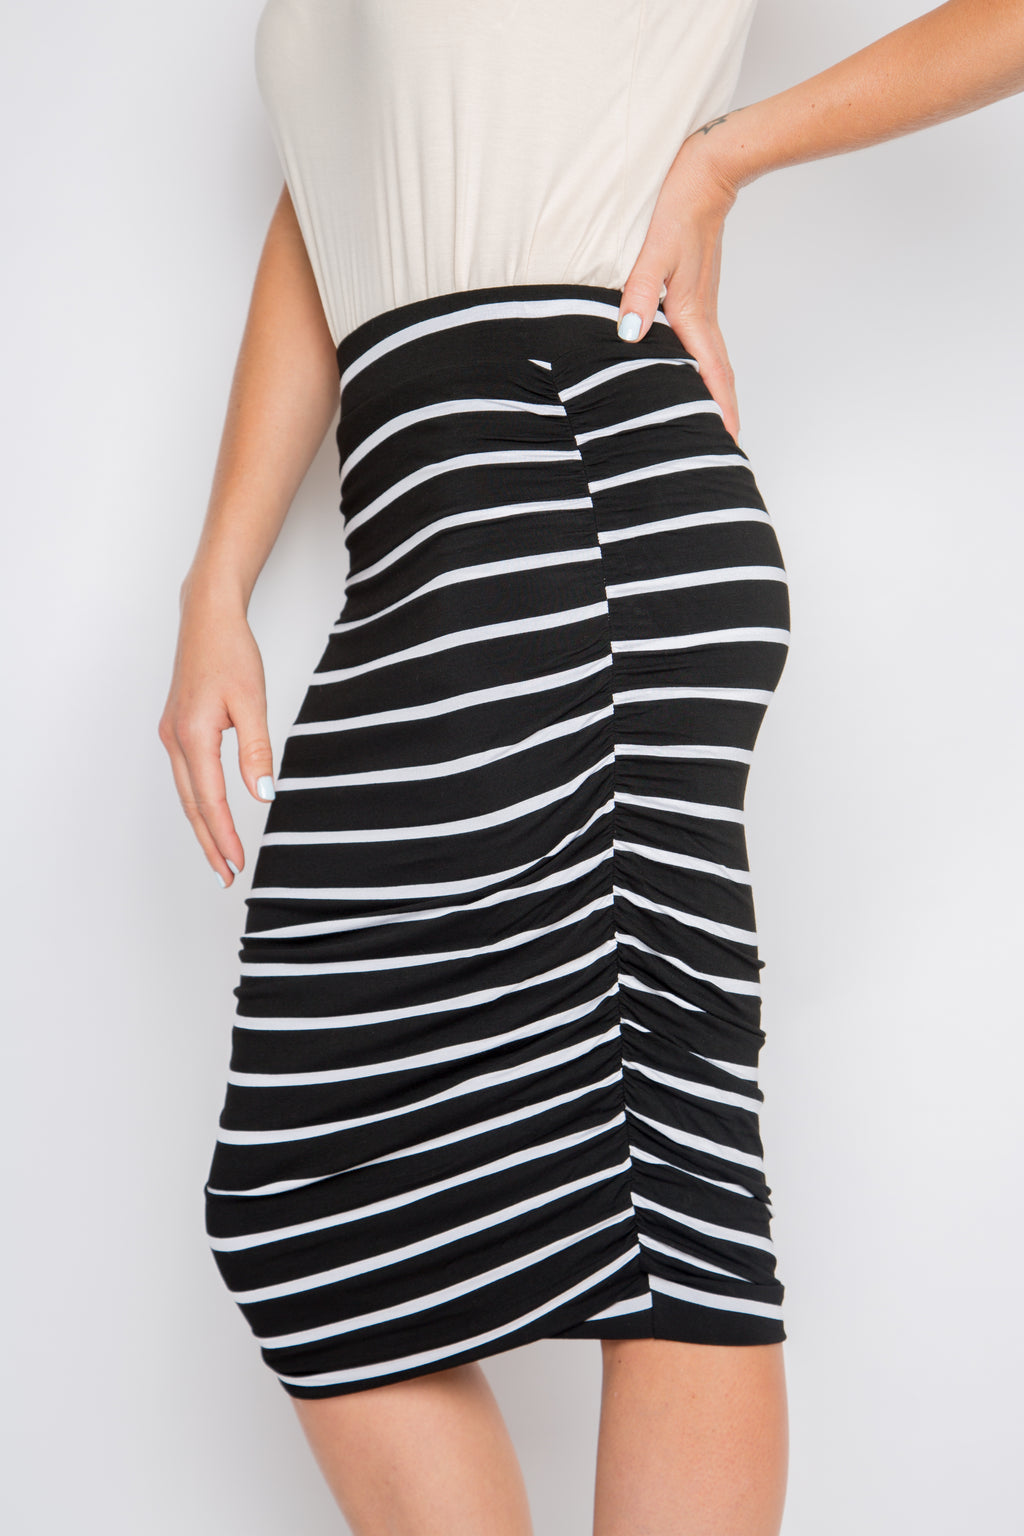 Ruche Skirt in Black and White Stripe